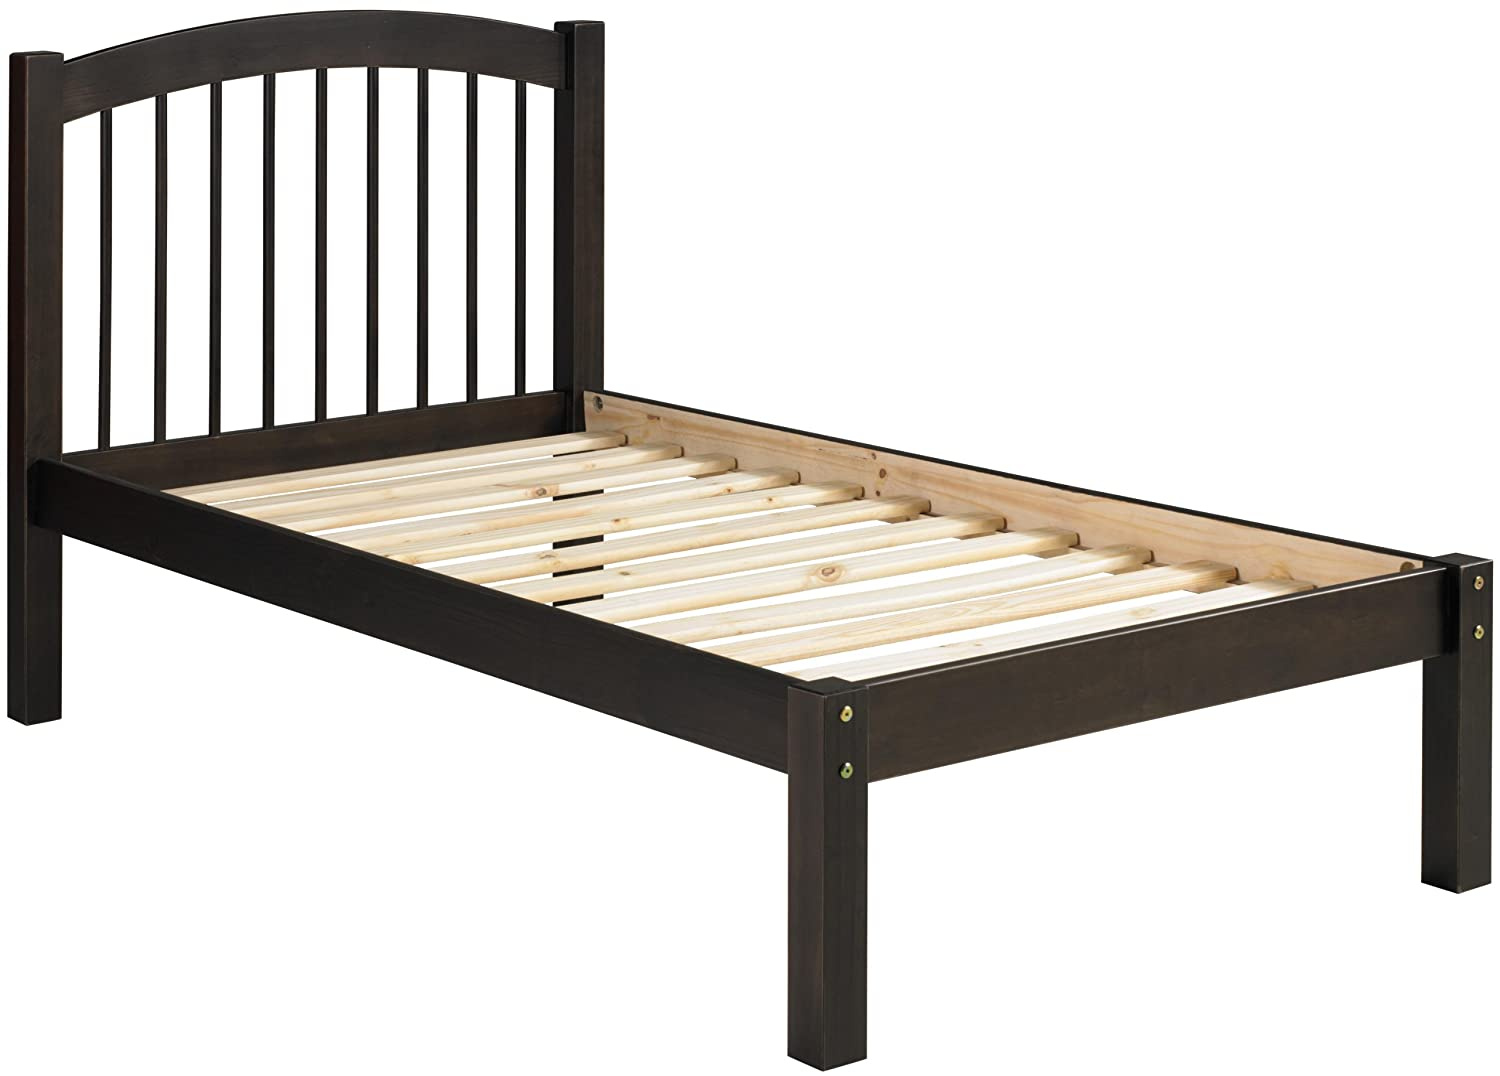 Wonderful image of Home & Garden > Furniture > Beds & Mattresses > Beds & B  with #906B3B color and 1500x1076 pixels